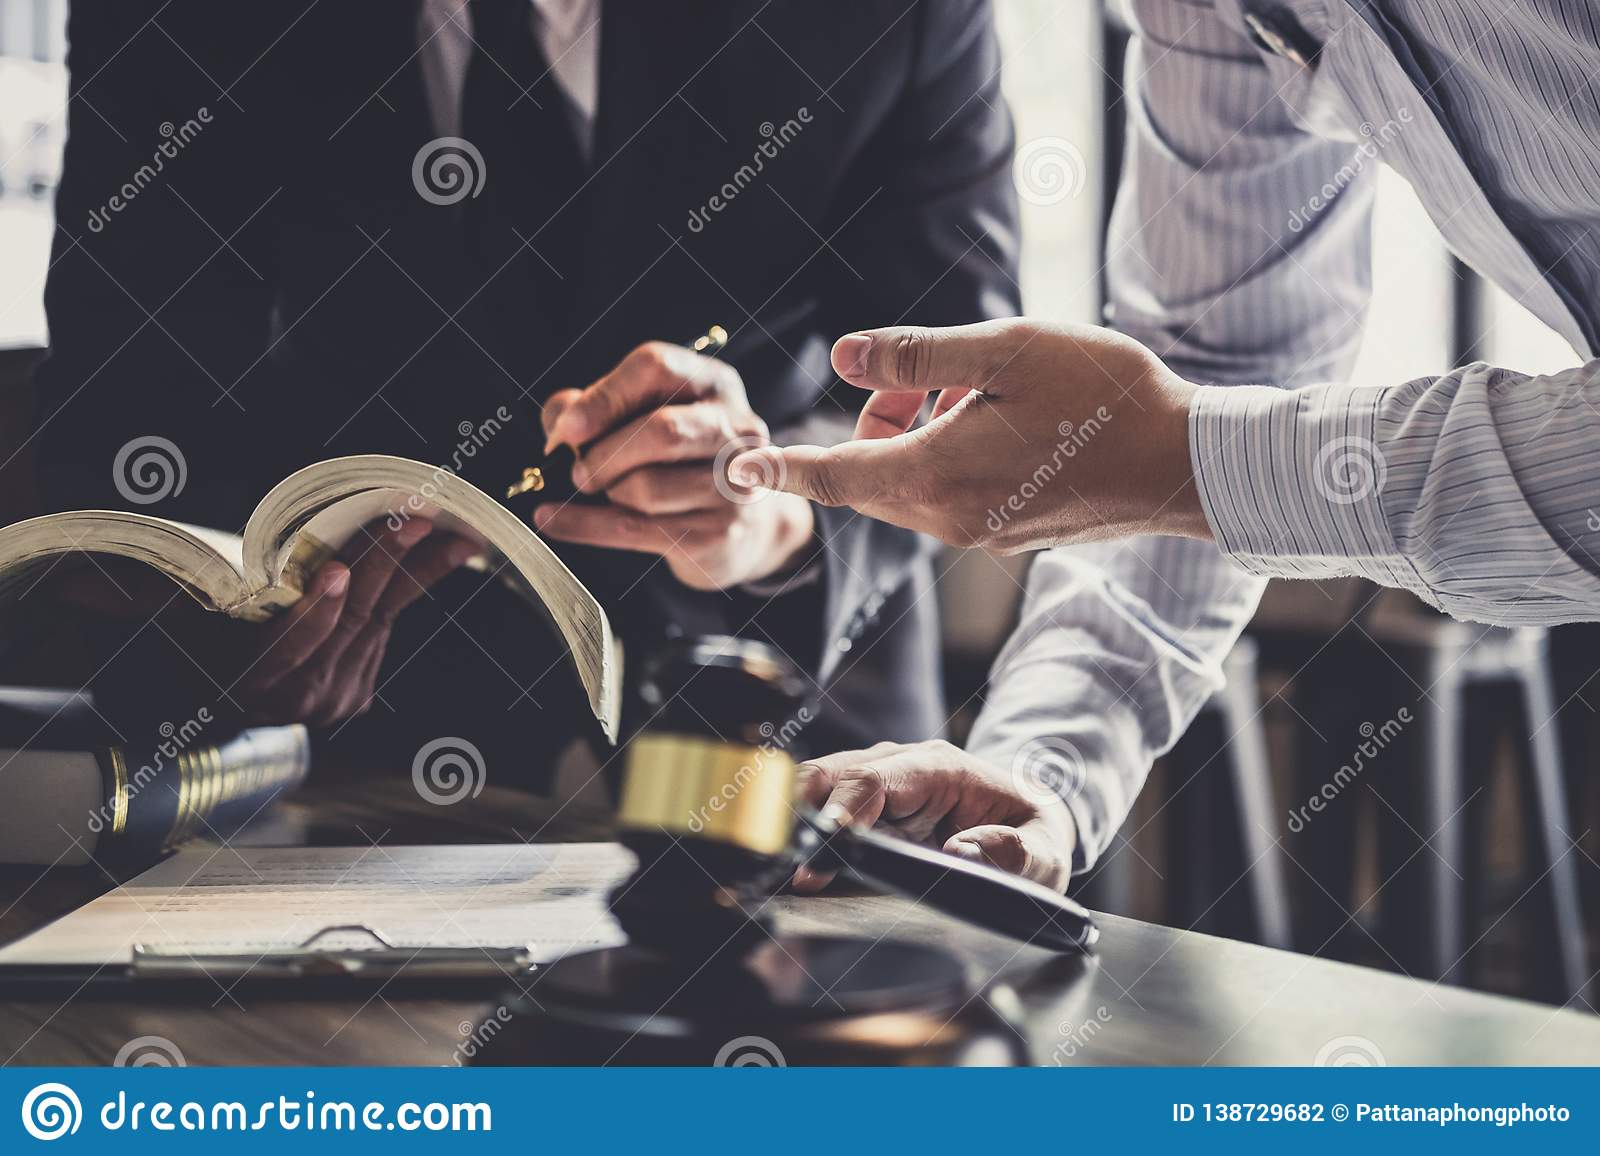 Good service cooperation, Consultation of Businessman and Male lawyer or judge counselor having team meeting with client, Law and